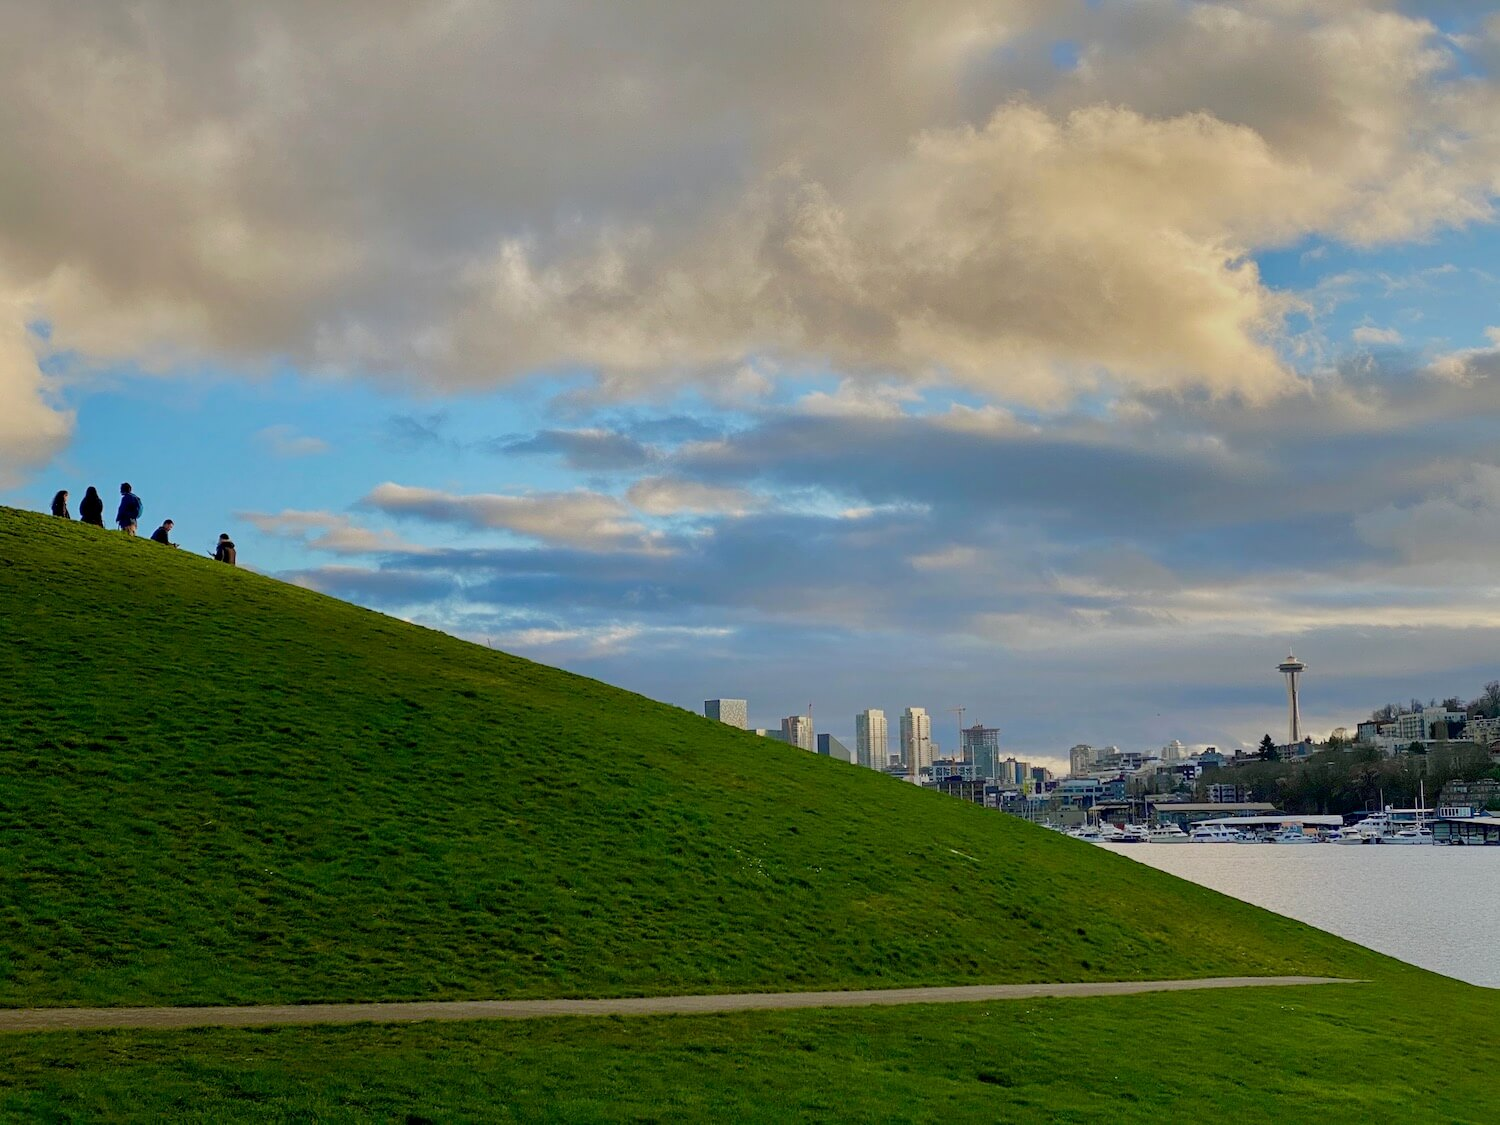 Gasworks Park is situated at the north end of Lake Union. This view of Seattle shows a diagonal slope of bright green grass with five people relaxing on the top of the hill looking toward the skyline, including the Space Needle. A tiny triangle of grayish Lake Union pushes through the right side of the photo while dark clouds move amongst pops of powder blue sky.